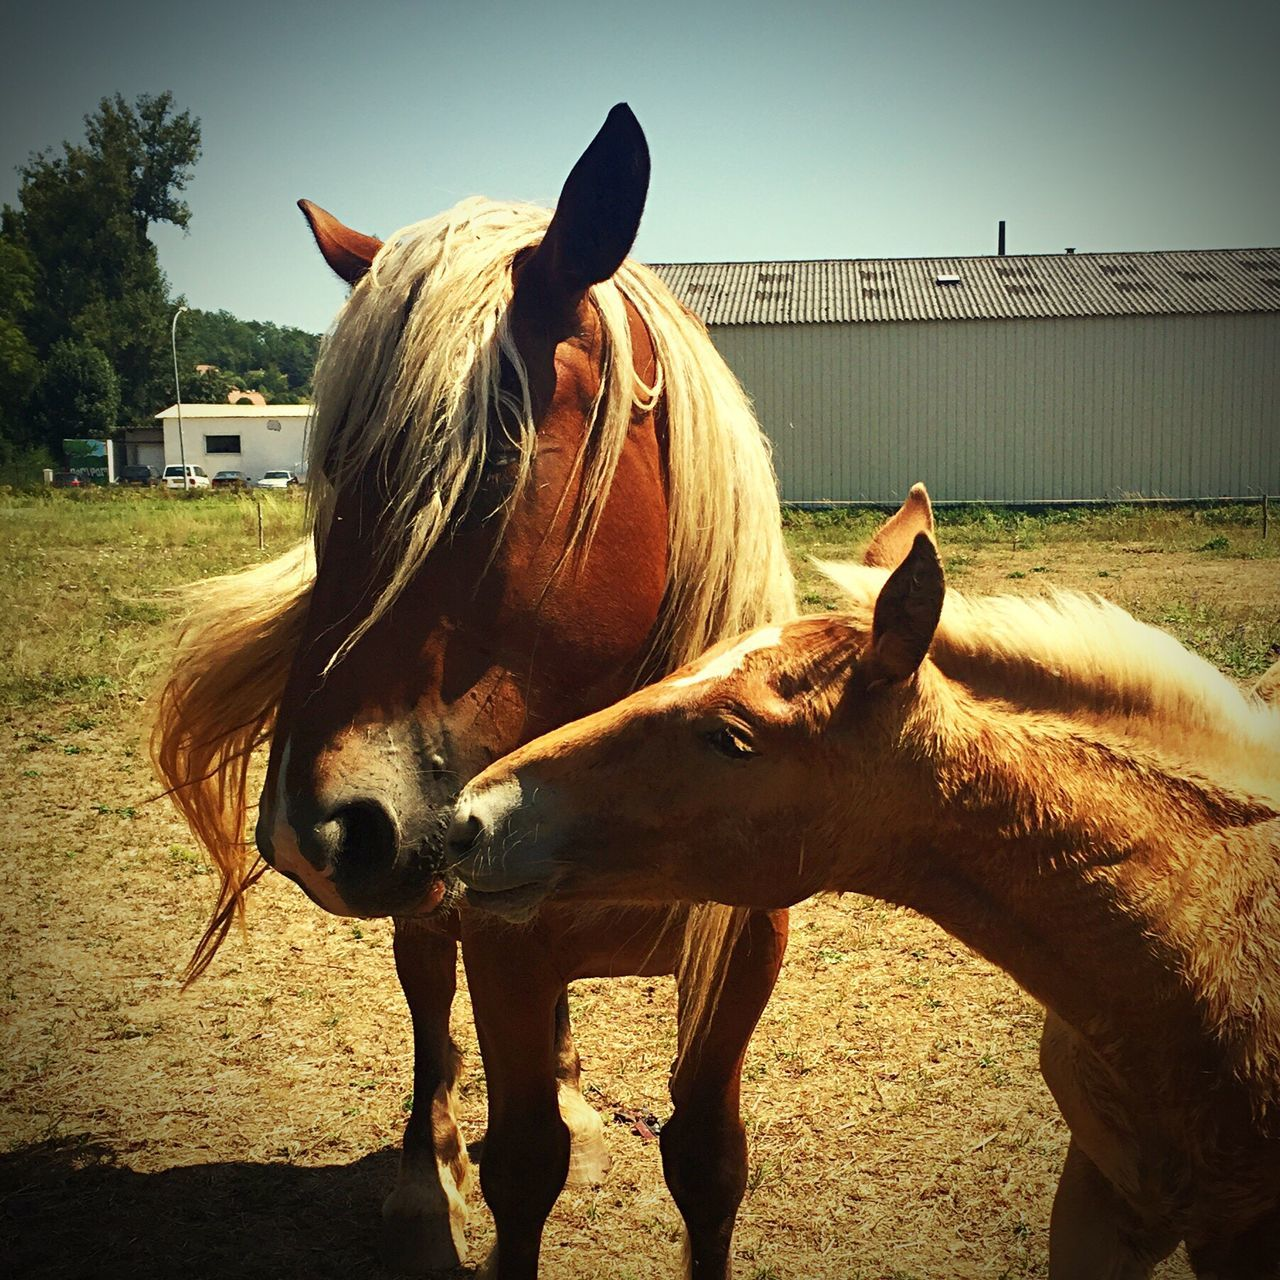 Horses Horse Horse Life Tenderness Tender Animals Animal Animal Photography Animal_collection Nature Nature_collection Nature Life Life Love Beauty Beauty In Nature Beauty Of Nature Cute Lovely Foal Baby Horse with his Mother 😊